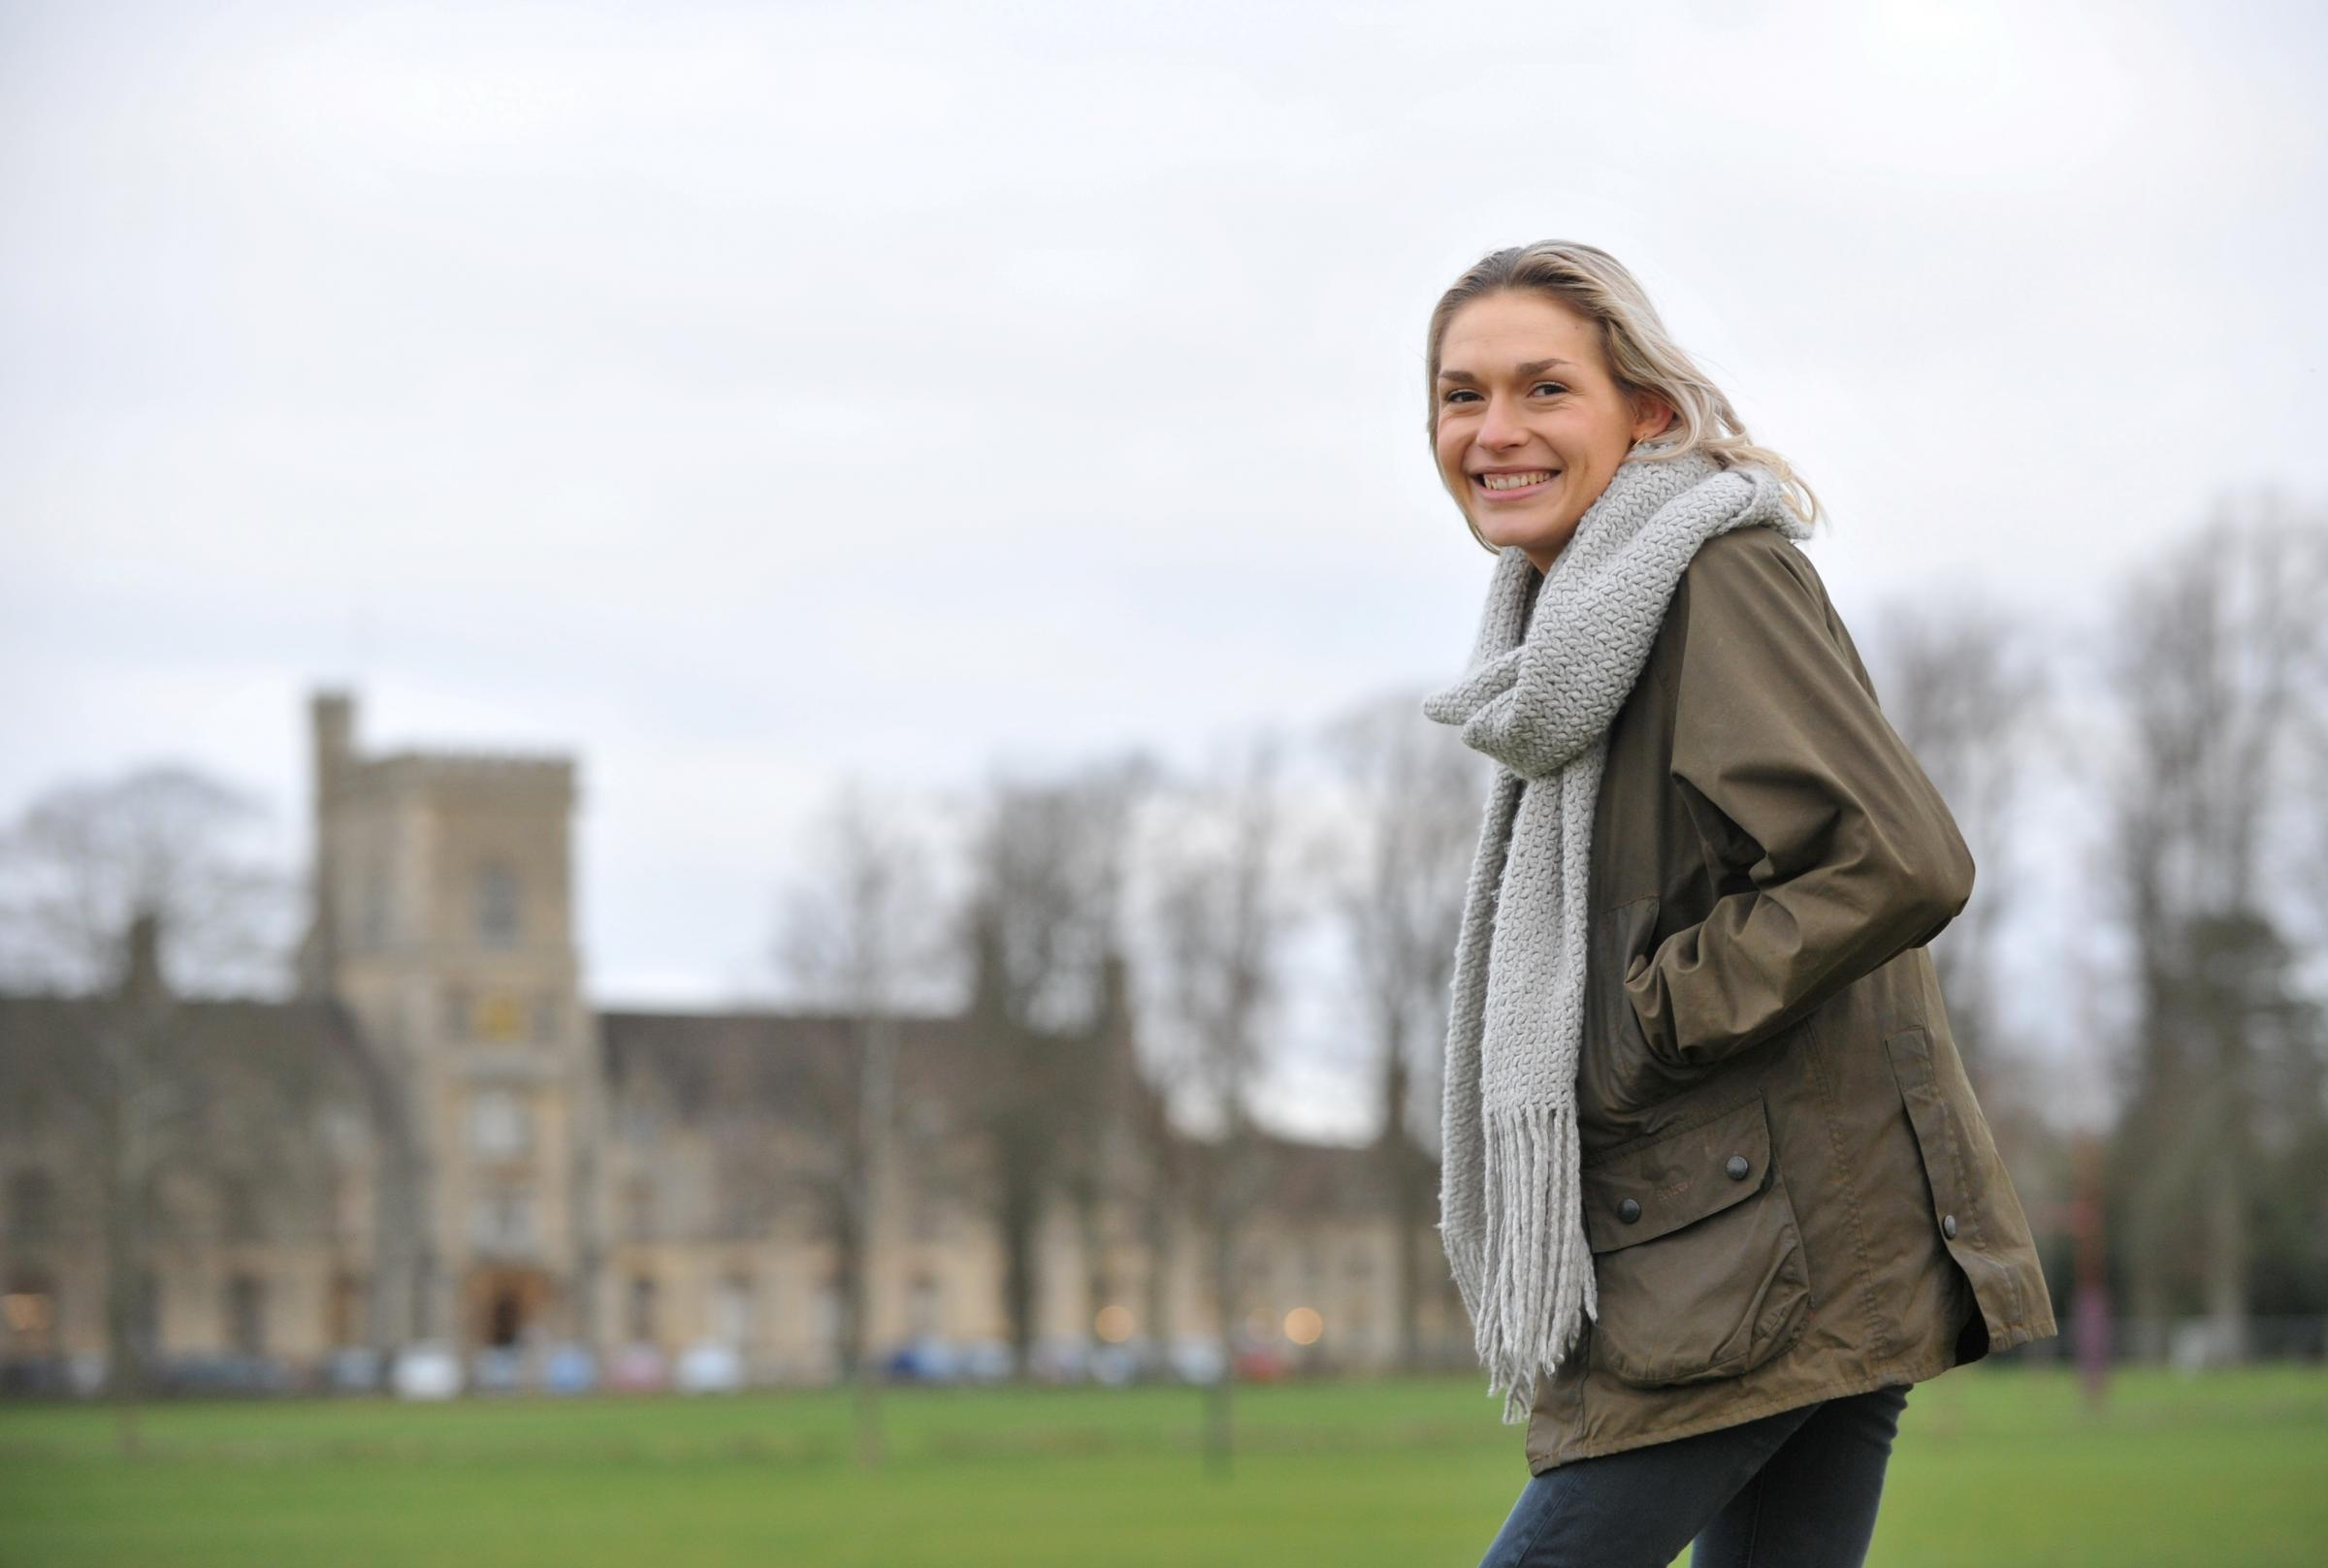 RAU student Isobel Green, BSc (Hons) Real Estate, who is Campaigns and Wellbeing Officer for the Students' Union and Student Ambassador. Image: Mikal Ludlow